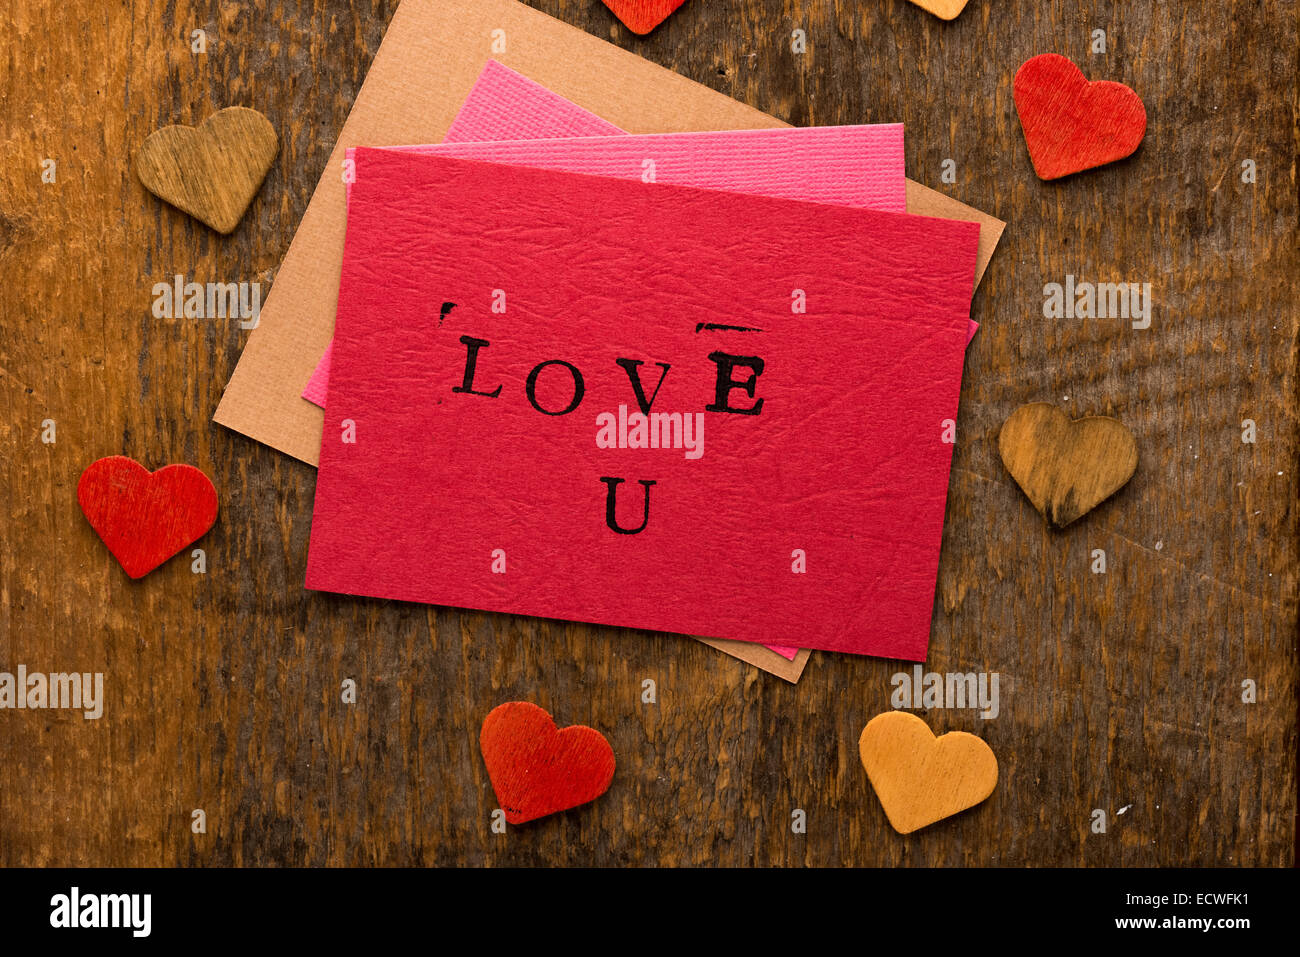 Handmade stamped valentine's day card with Love U stamped on it set on rustic wood - Stock Image